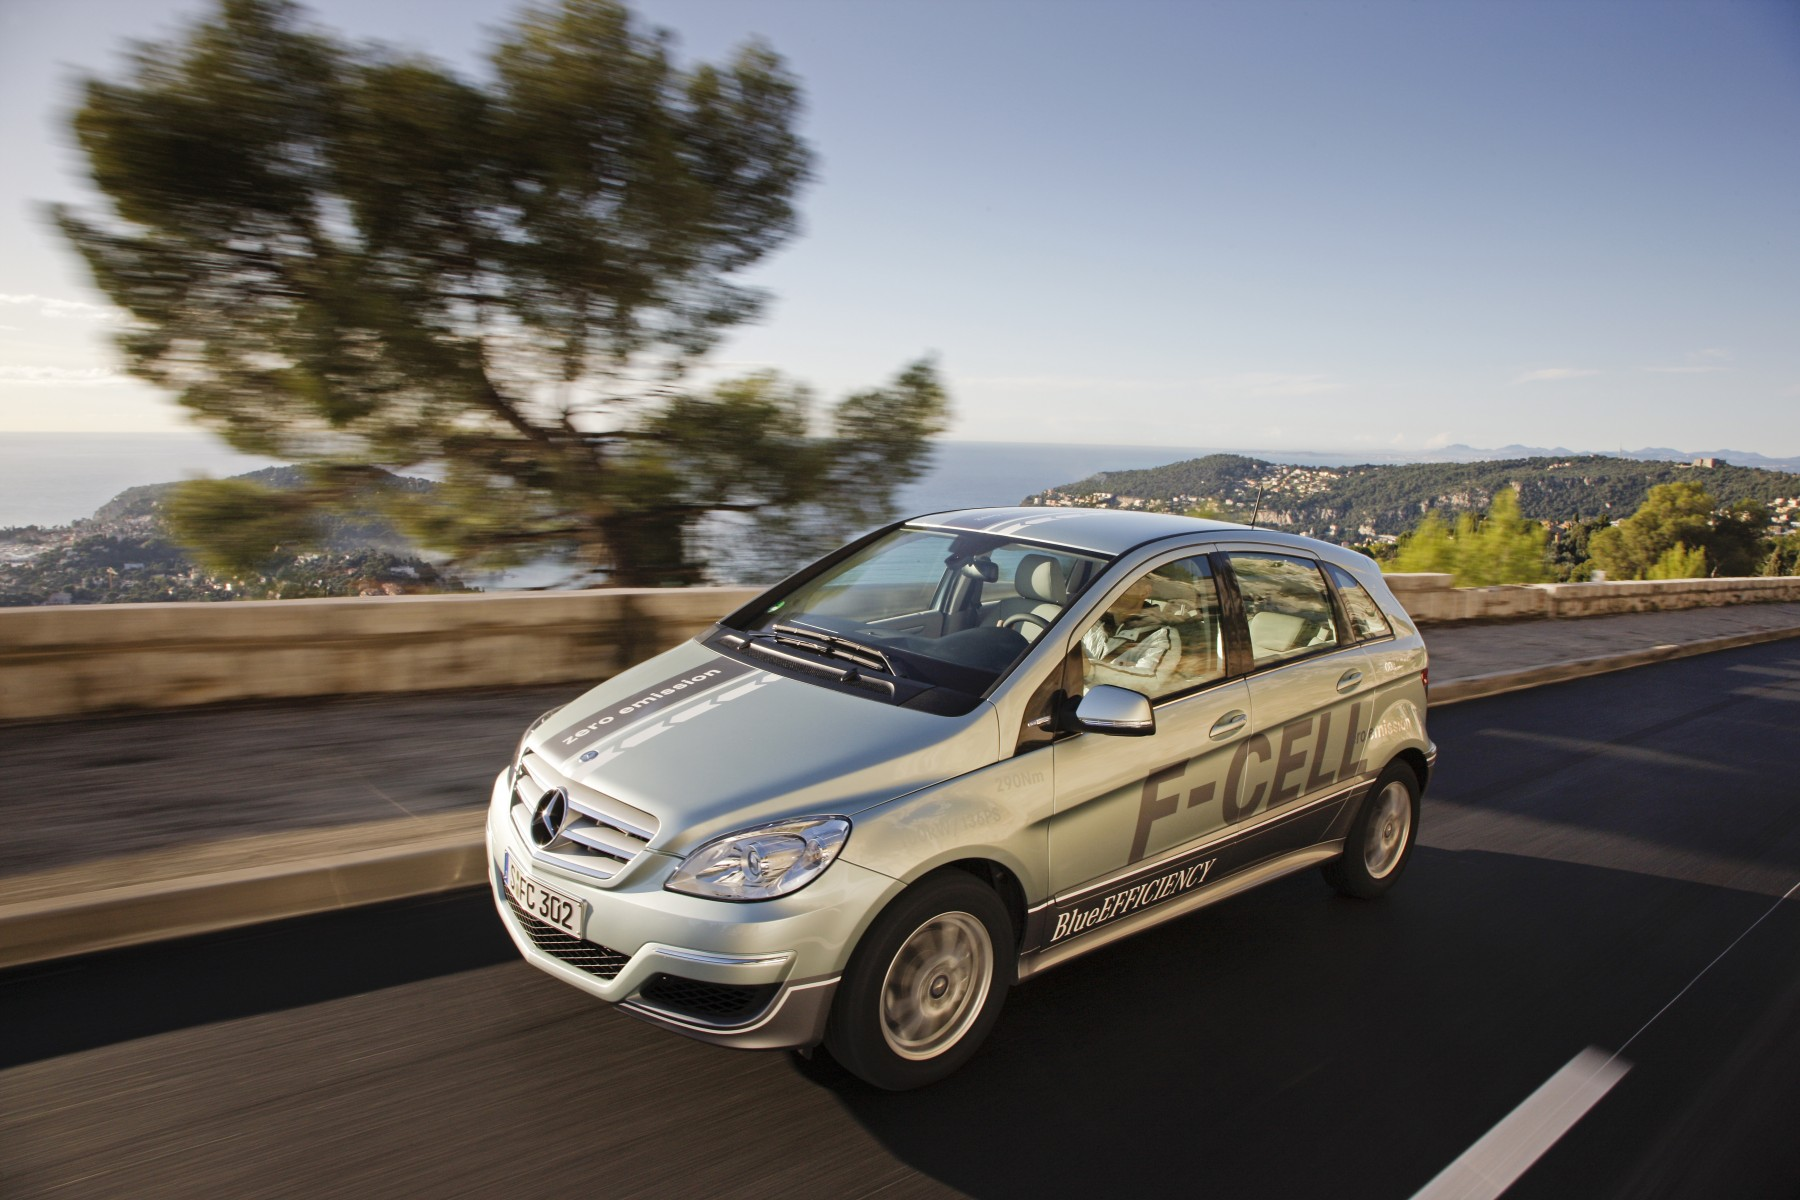 The Mercedes-Benz B-Class F-CELL is in customers hands in Europe and the US already since 2010.